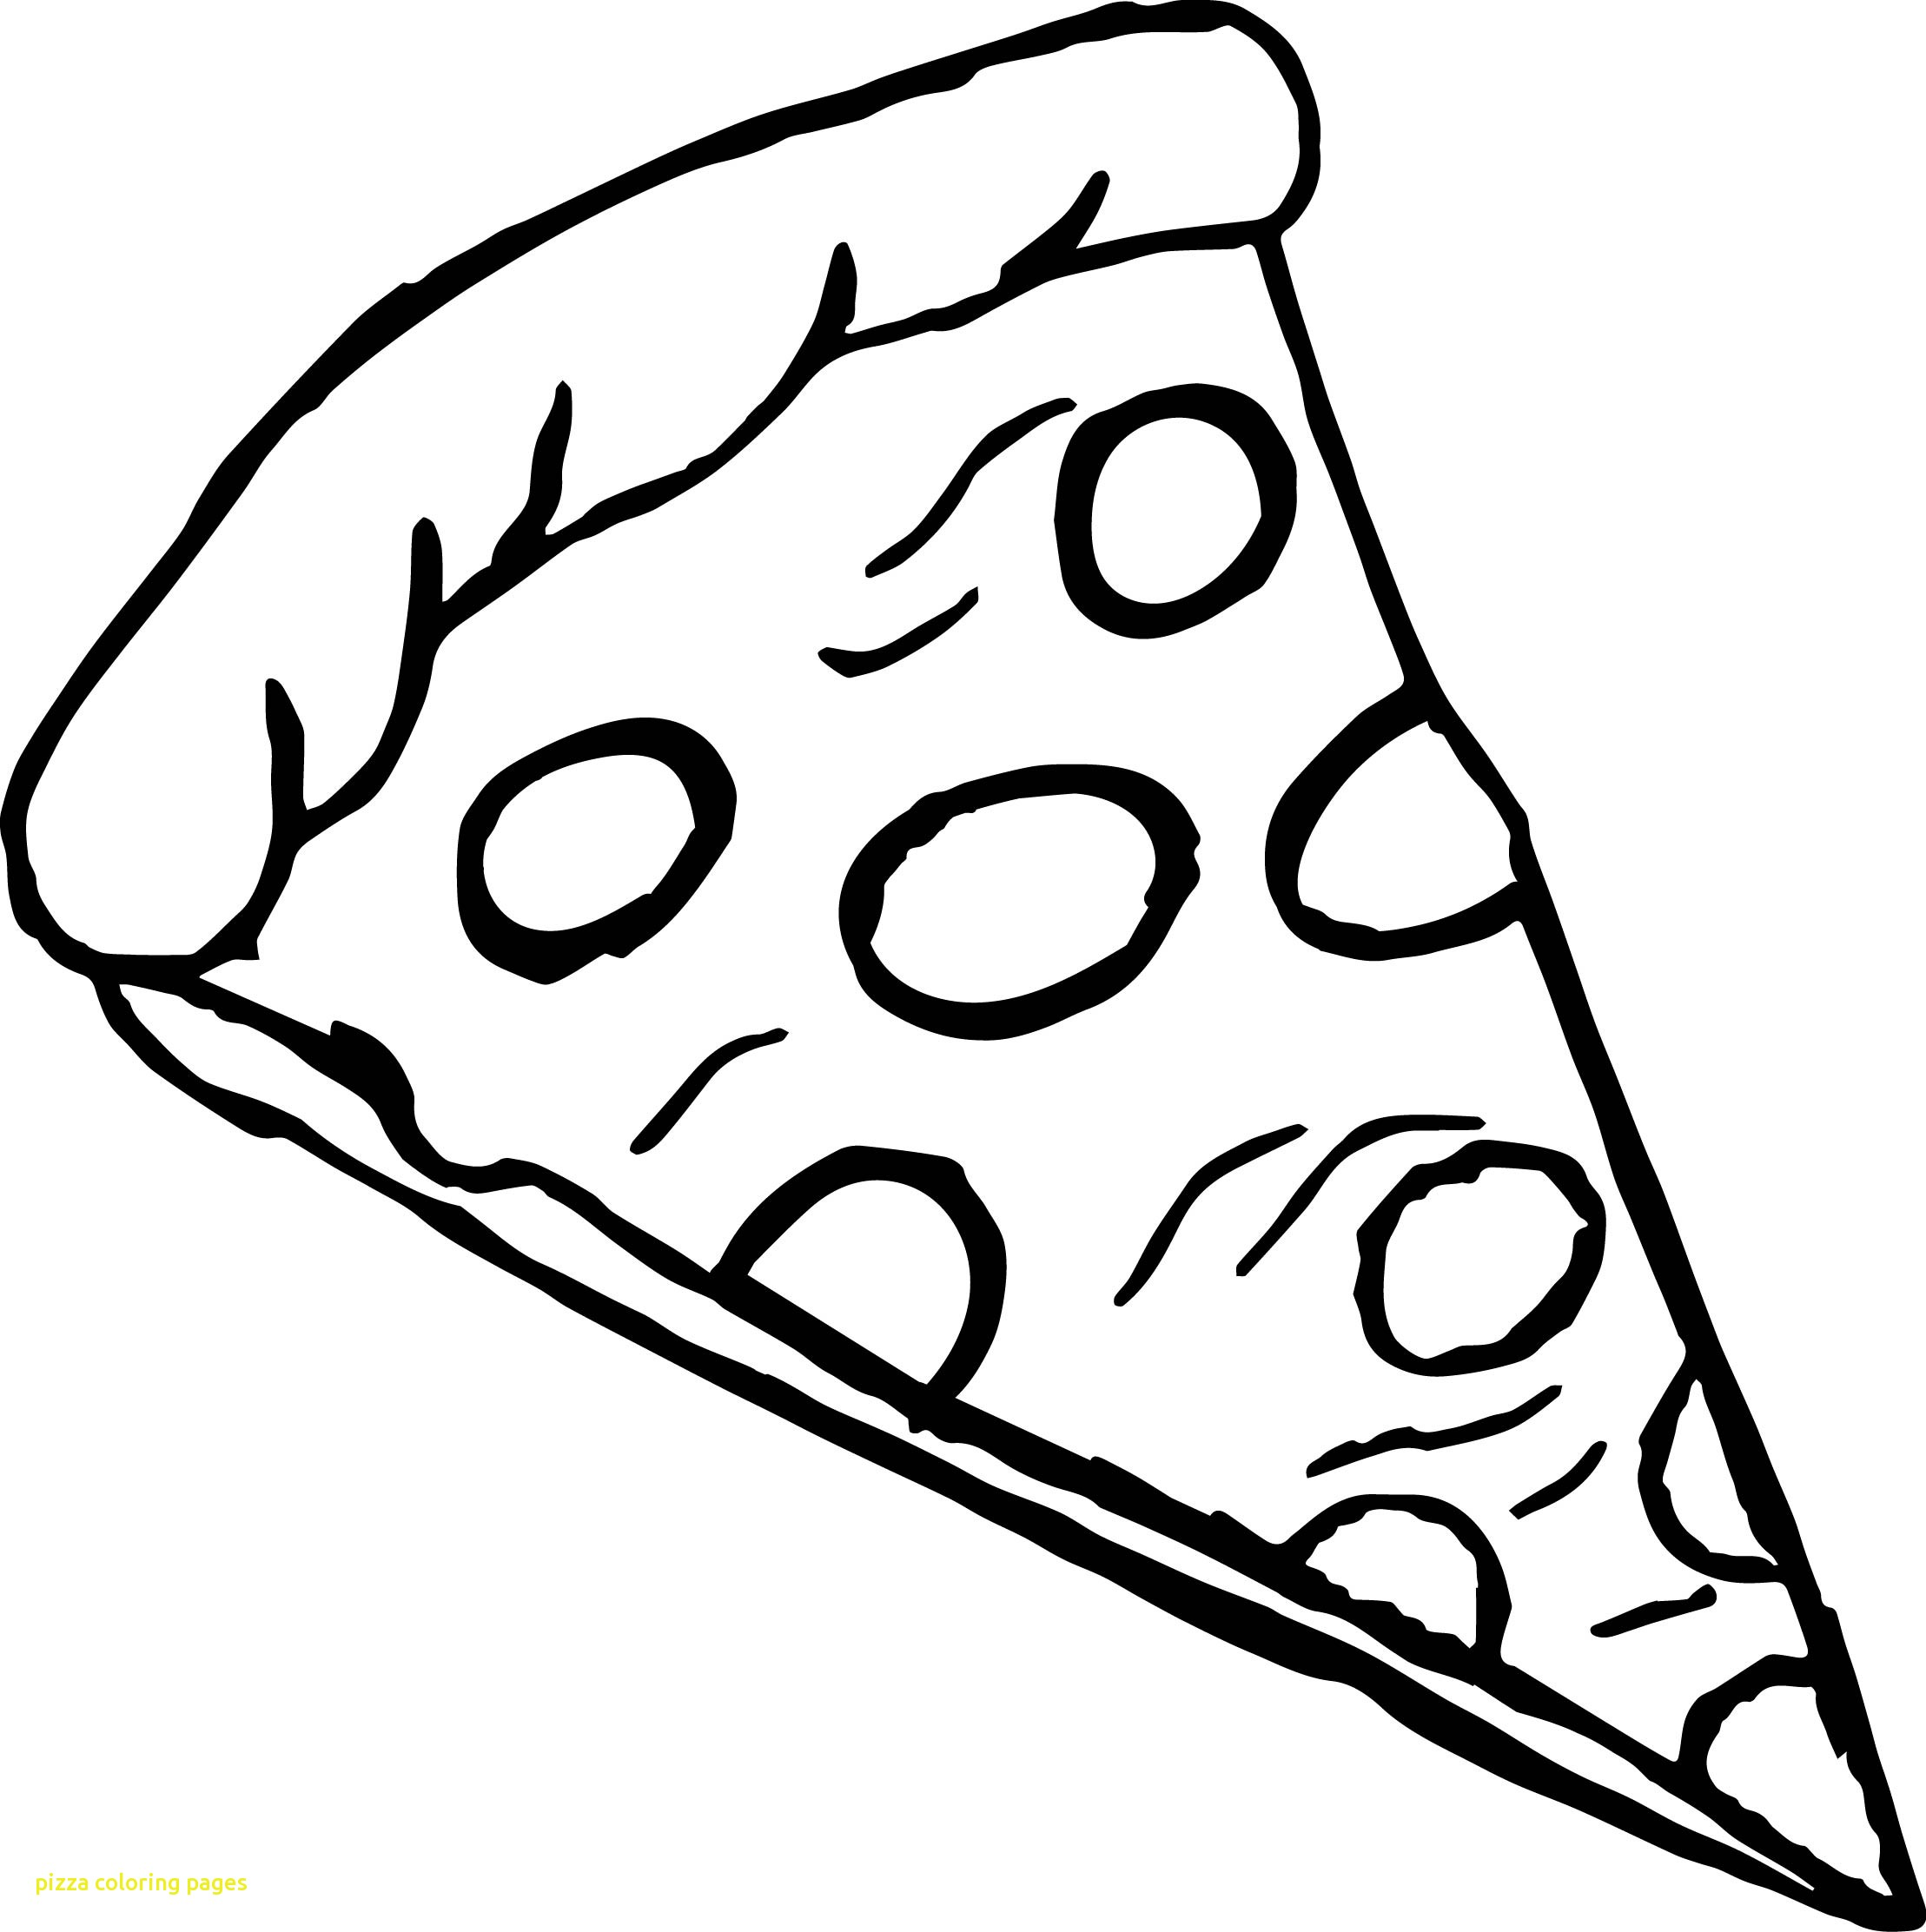 2217x2224 Pizza Coloring Pages Preschool Archives Wkwedding Co